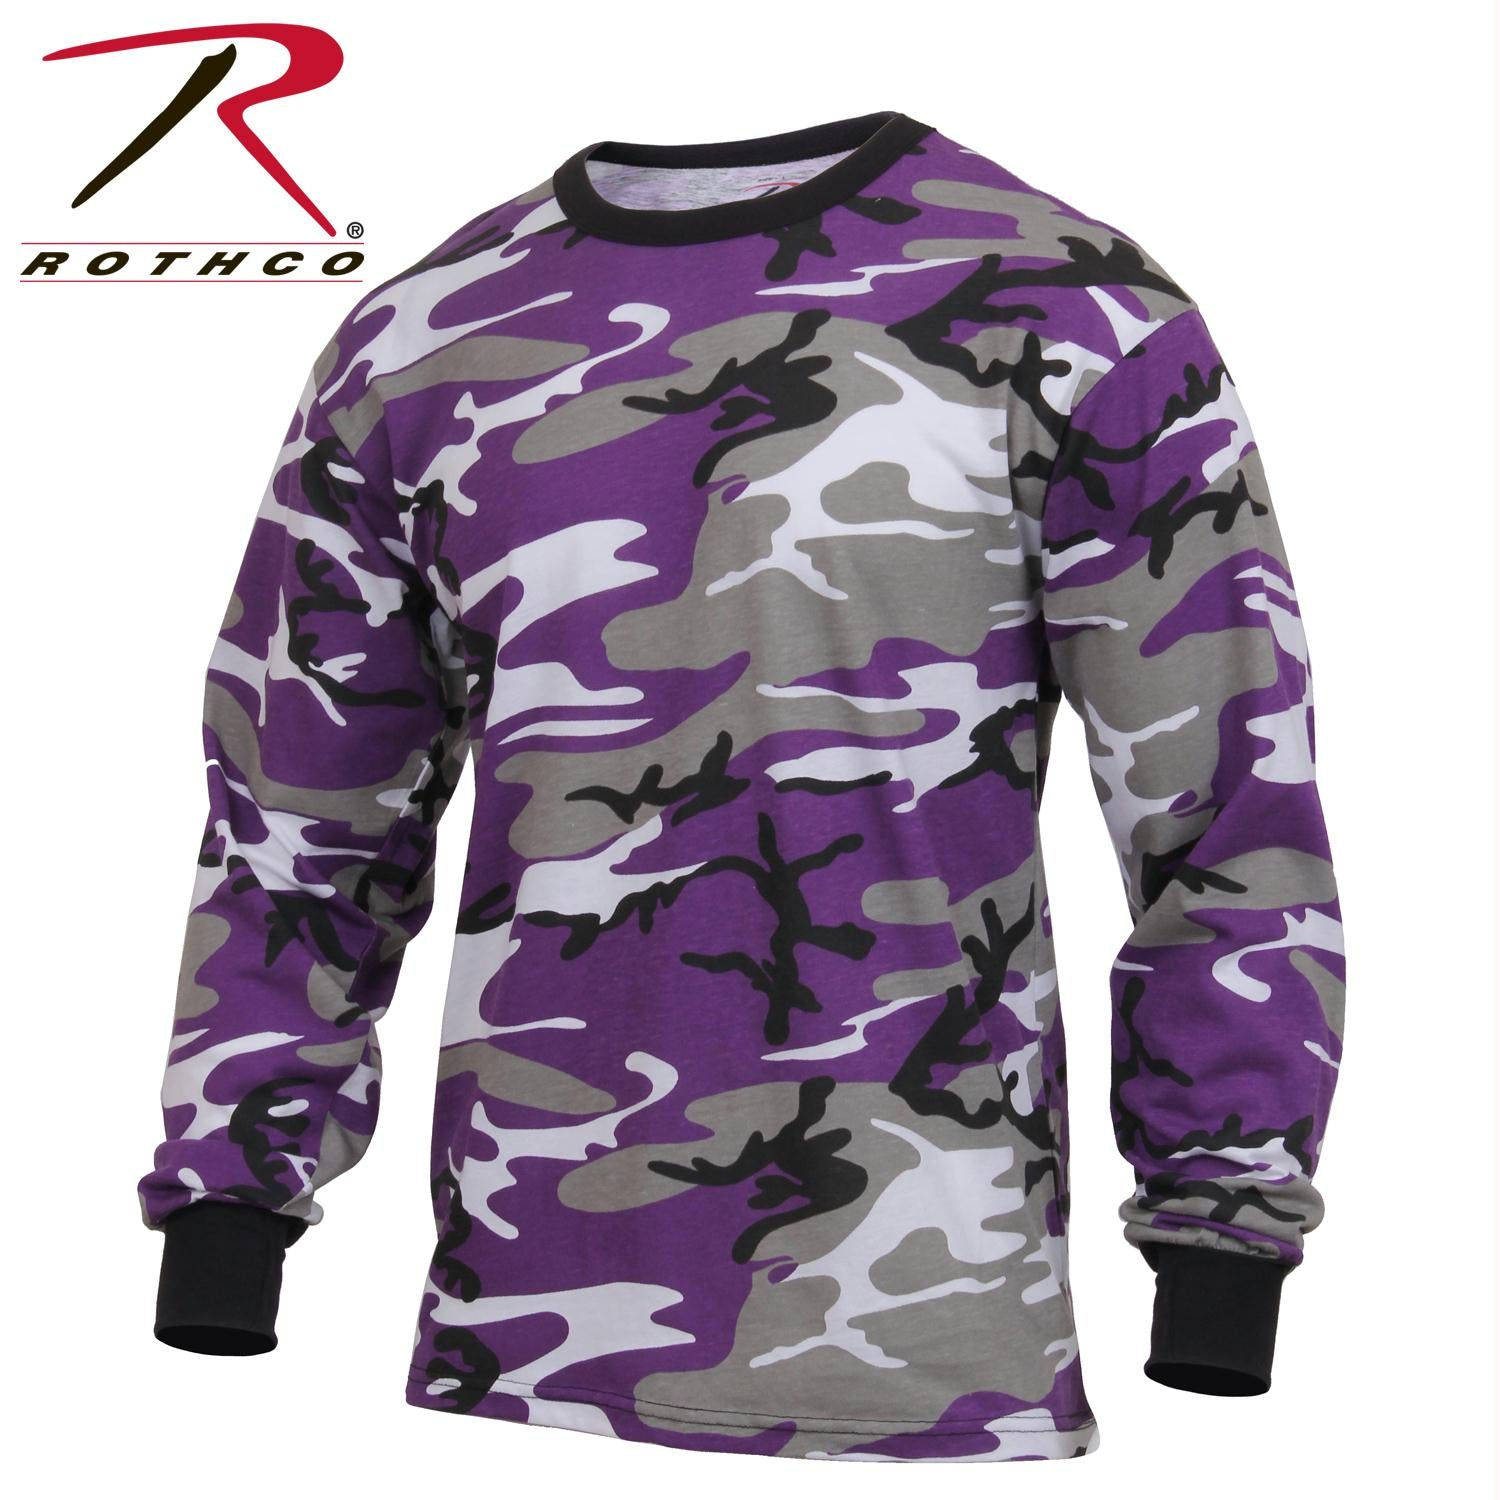 Rothco Long Sleeve Colored Camo T-Shirt - Ultra Violet Camo / XL